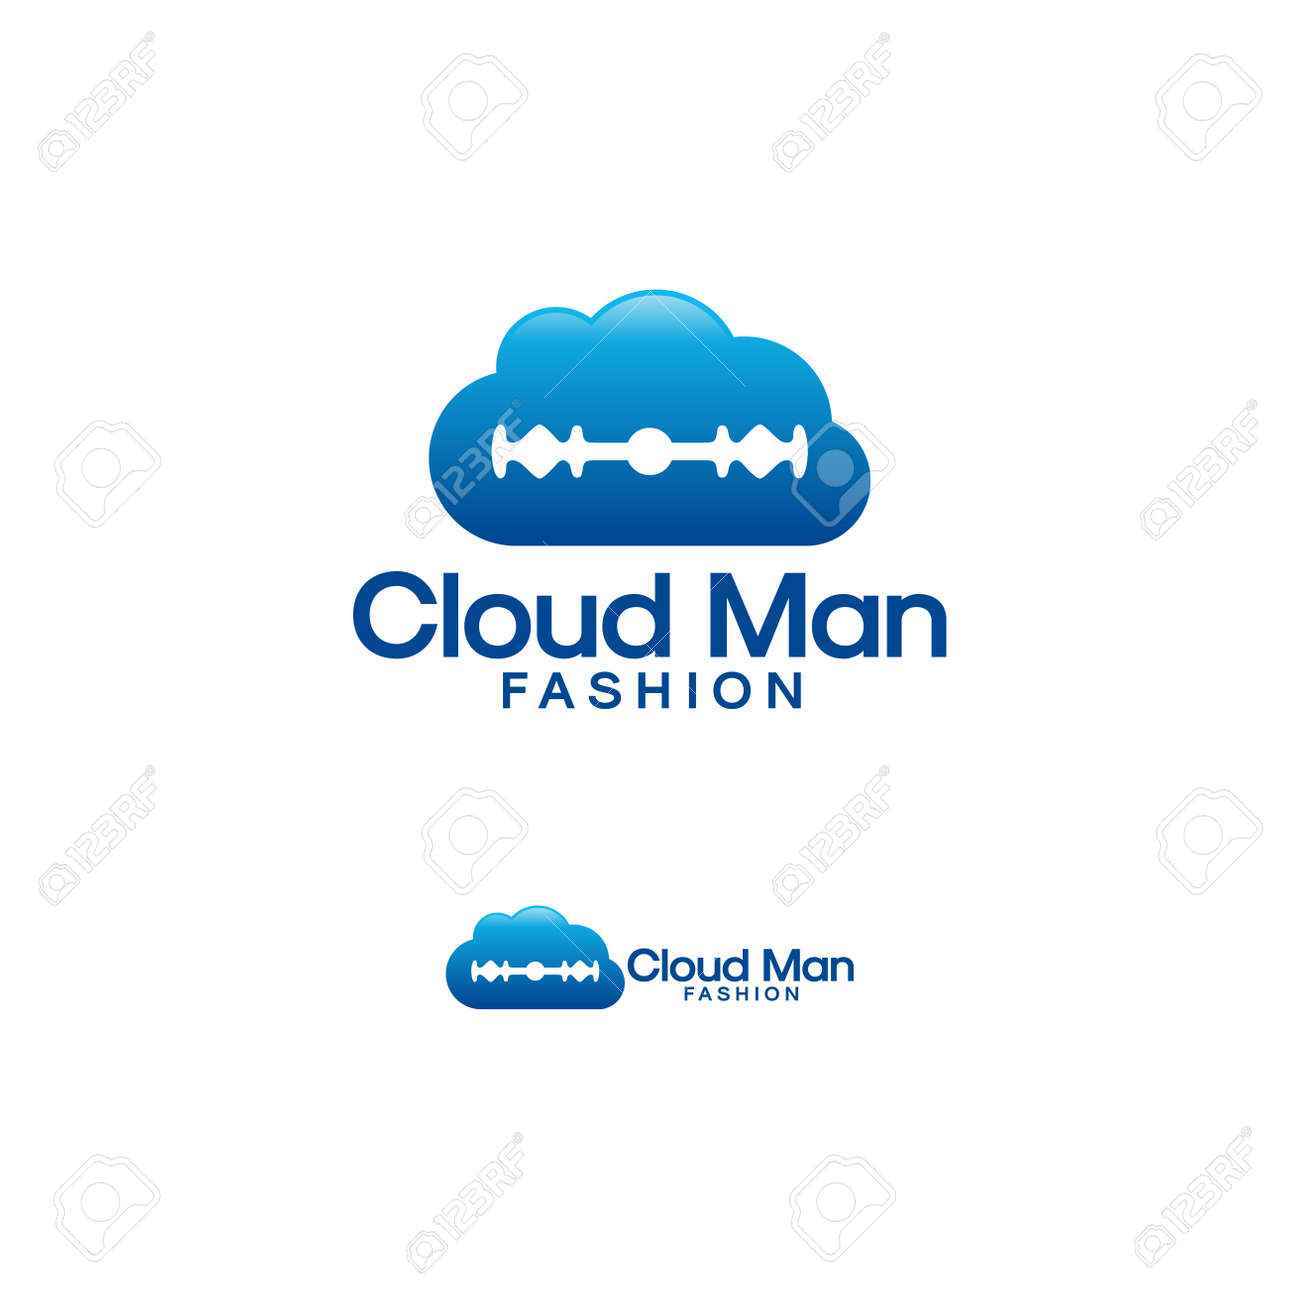 Cloud Man Fashion Logo Designs Online Man Fashion Logo Template Royalty Free Cliparts Vectors And Stock Illustration Image 138534764